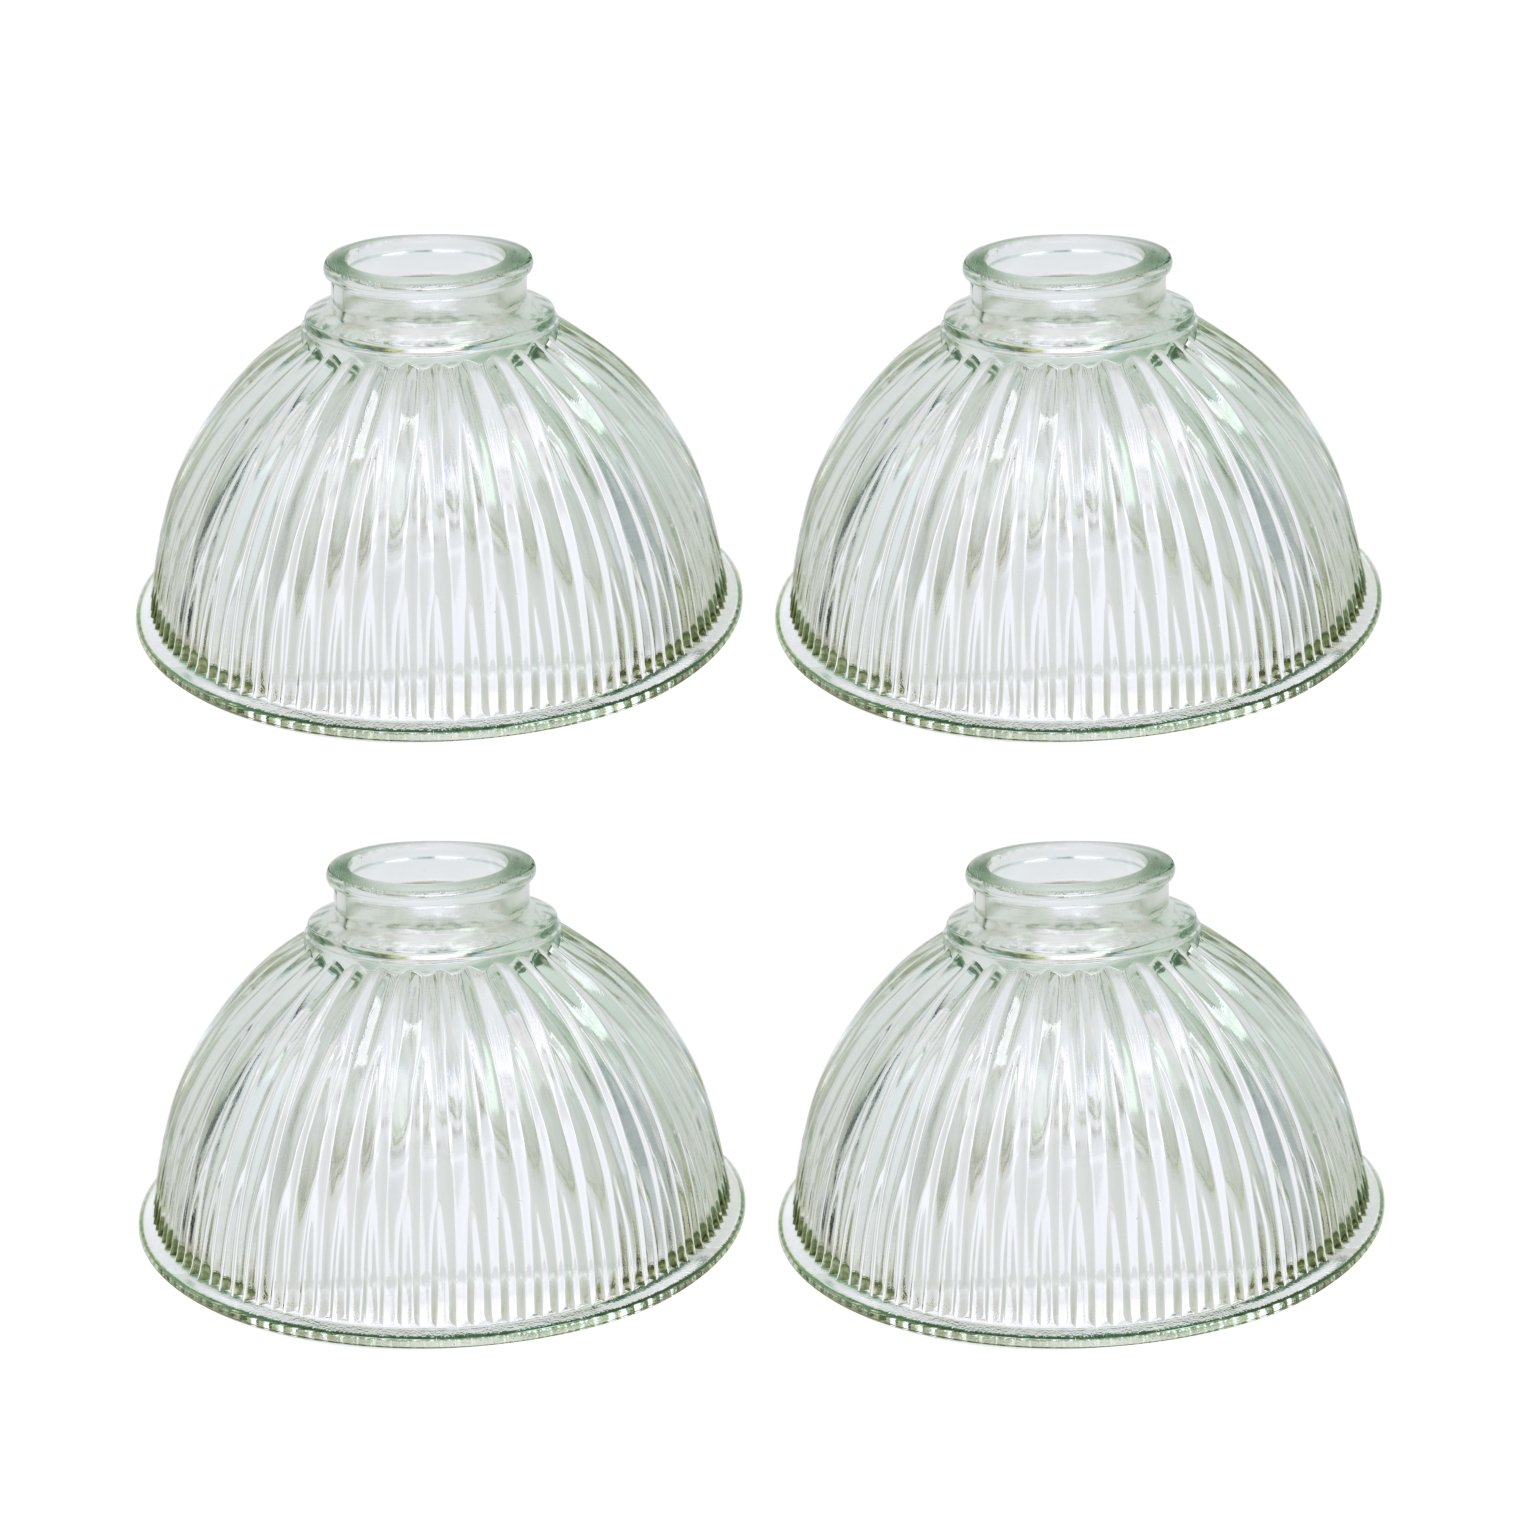 Aspen Creative 23019-4 Transitional Style Replacement Bell Shaped Clear Pebbled Glass Shade, 2 1/8'' Fitter Size, 4 3/4'' High x 4'' Diameter (4 Pack)